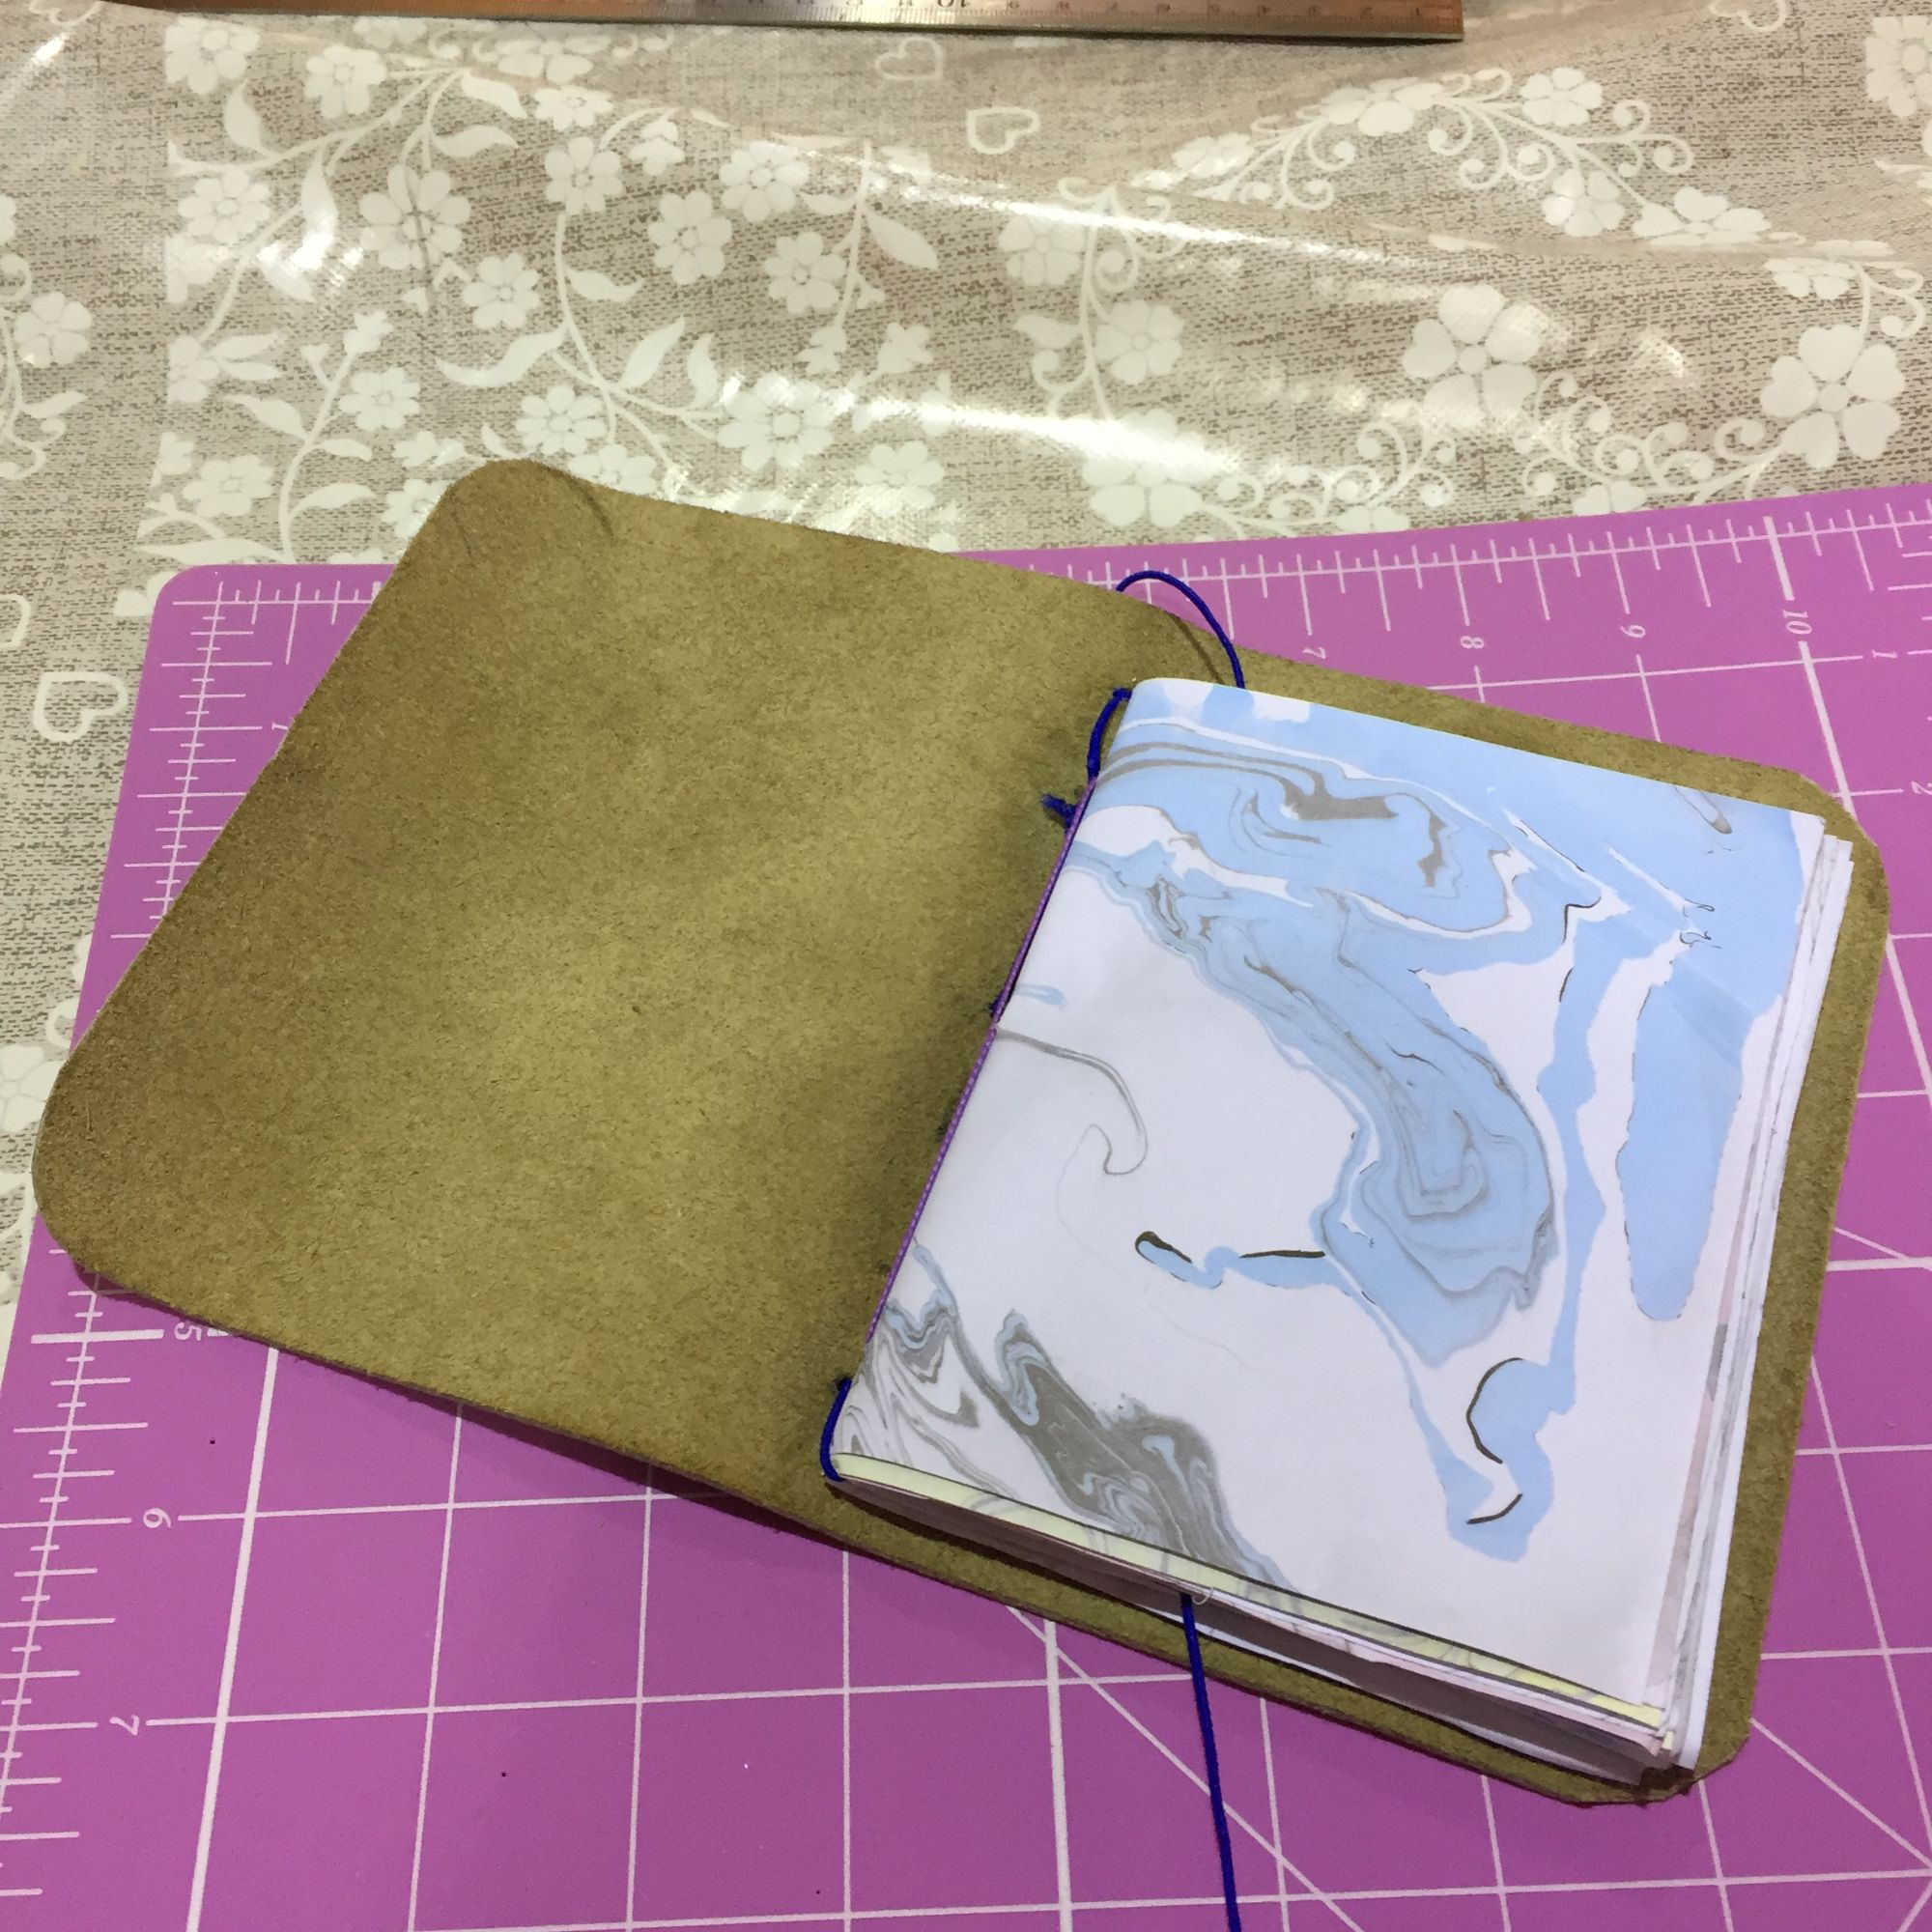 Japanese Marbling and Travellers Leather Journal Workshop - Stitching